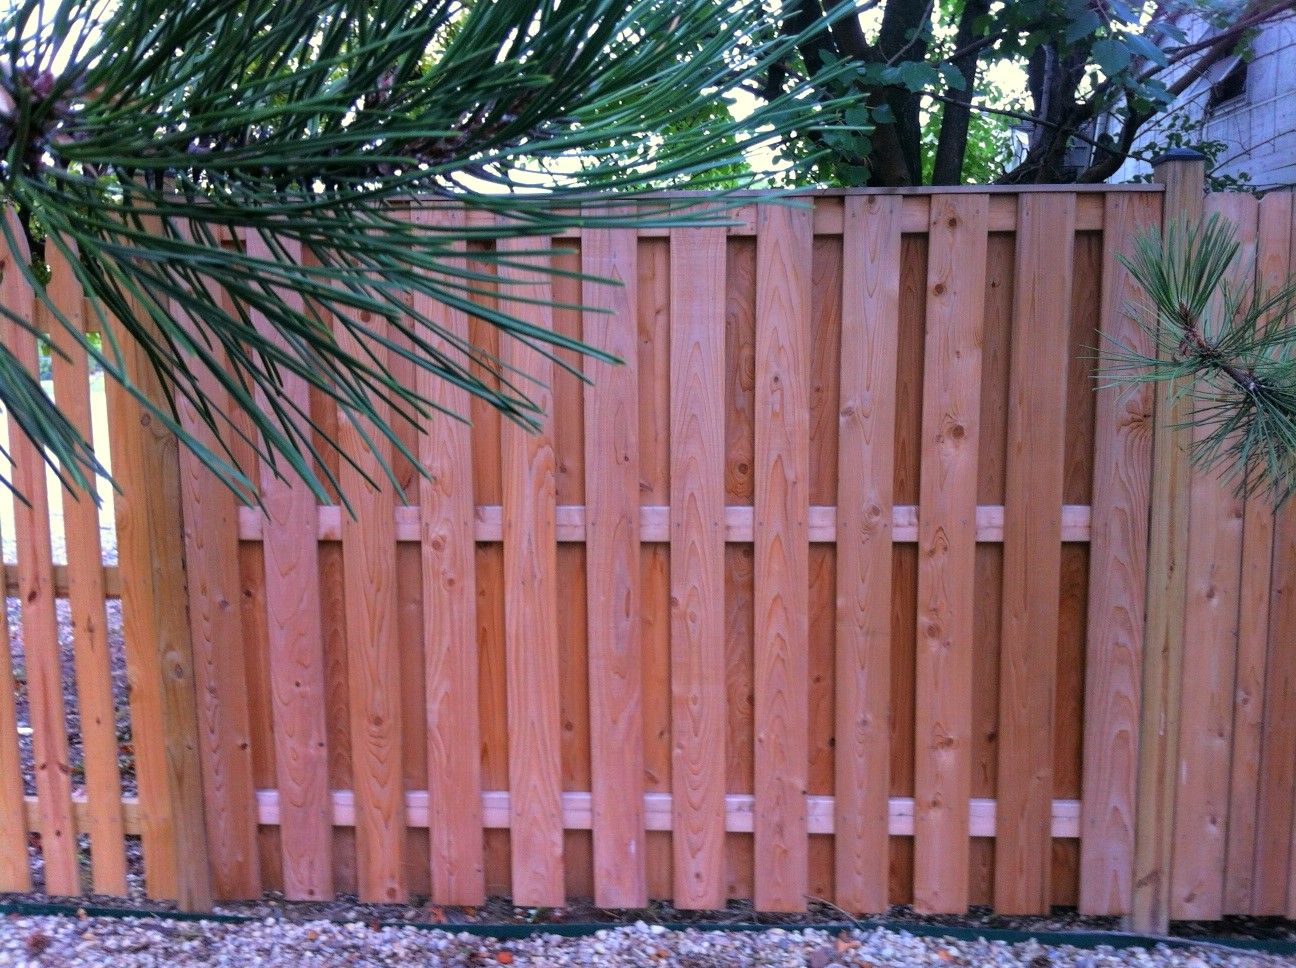 Our New 1x6 Board On Board Shadowbox Fence In 3 Weeks Long Fence Installation Backyard Fences Backyard Design Fence Design